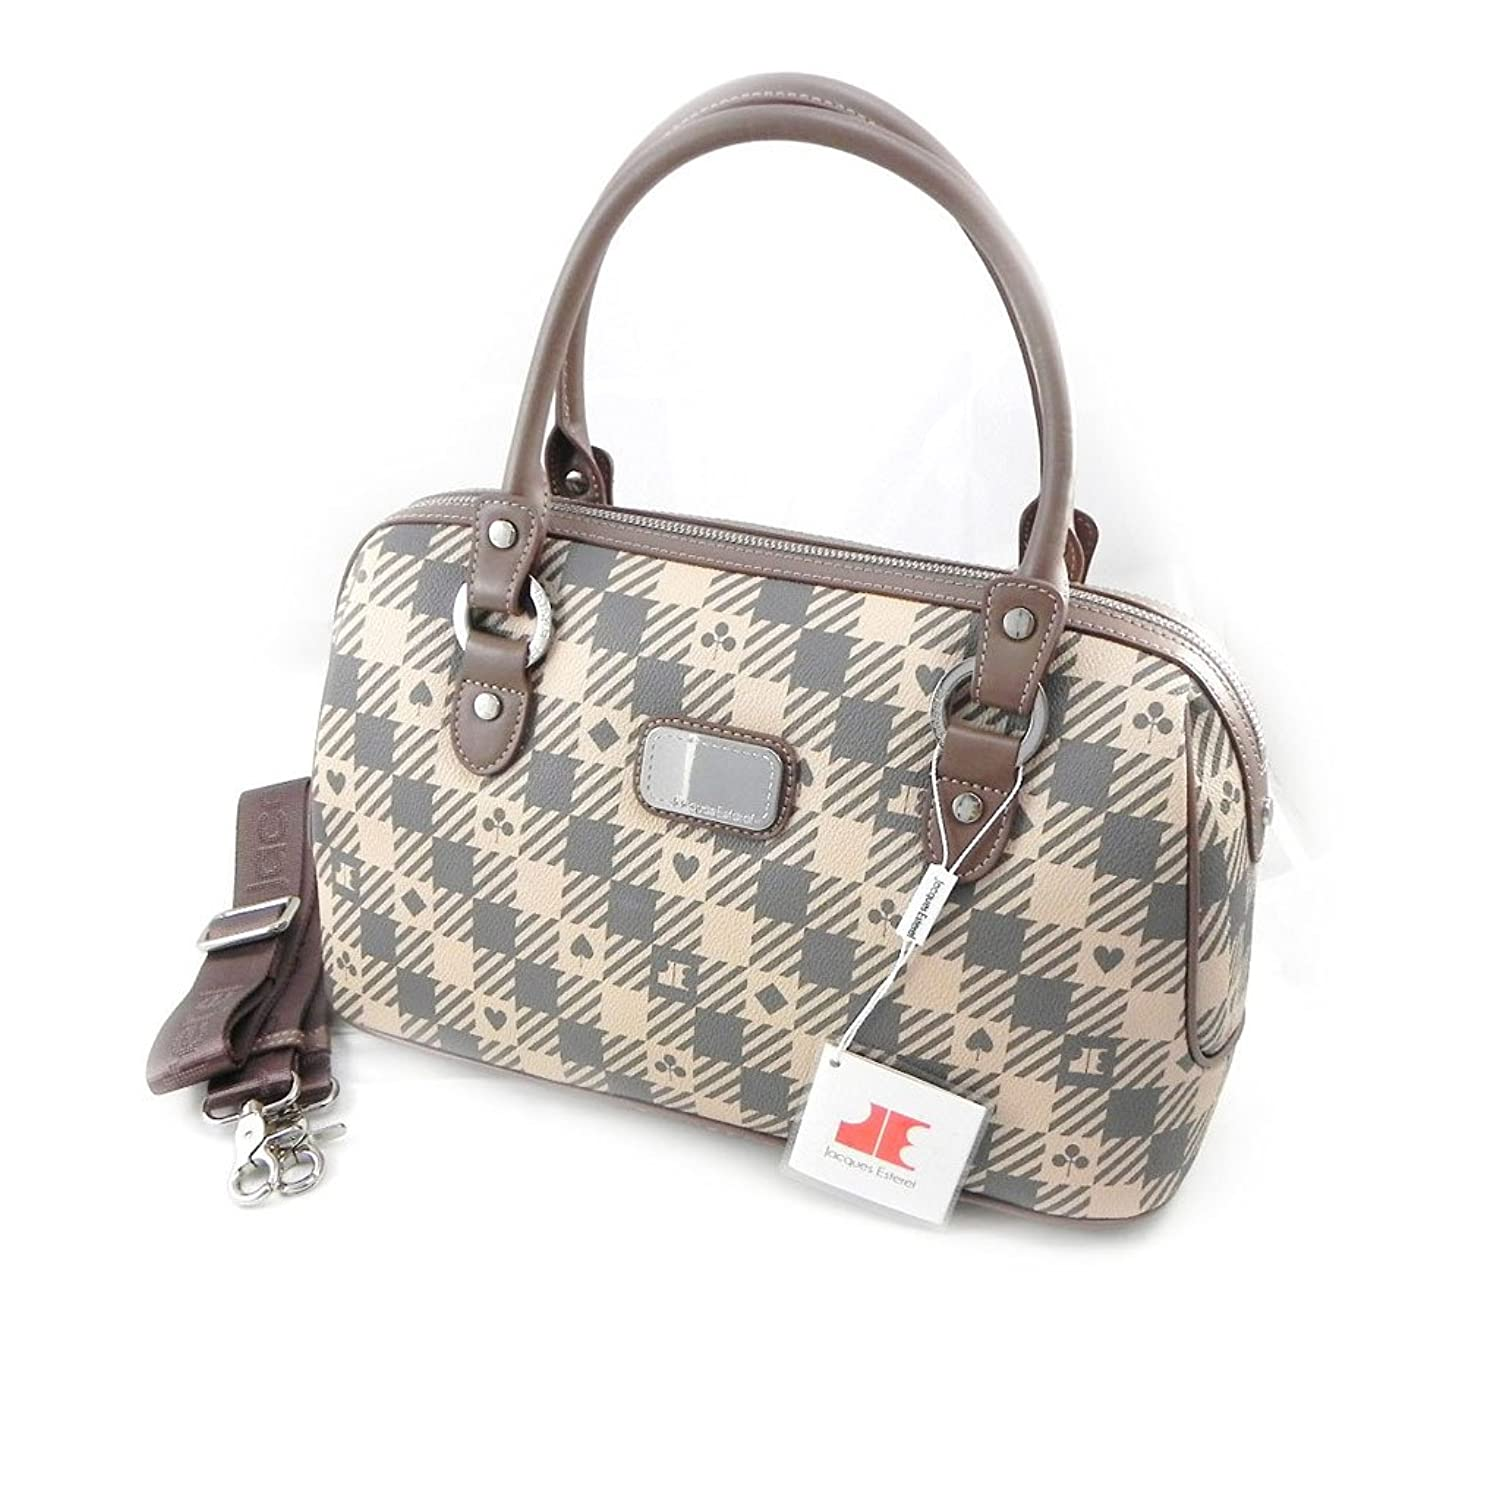 Bag 'Jacques Esterel' gray pink.